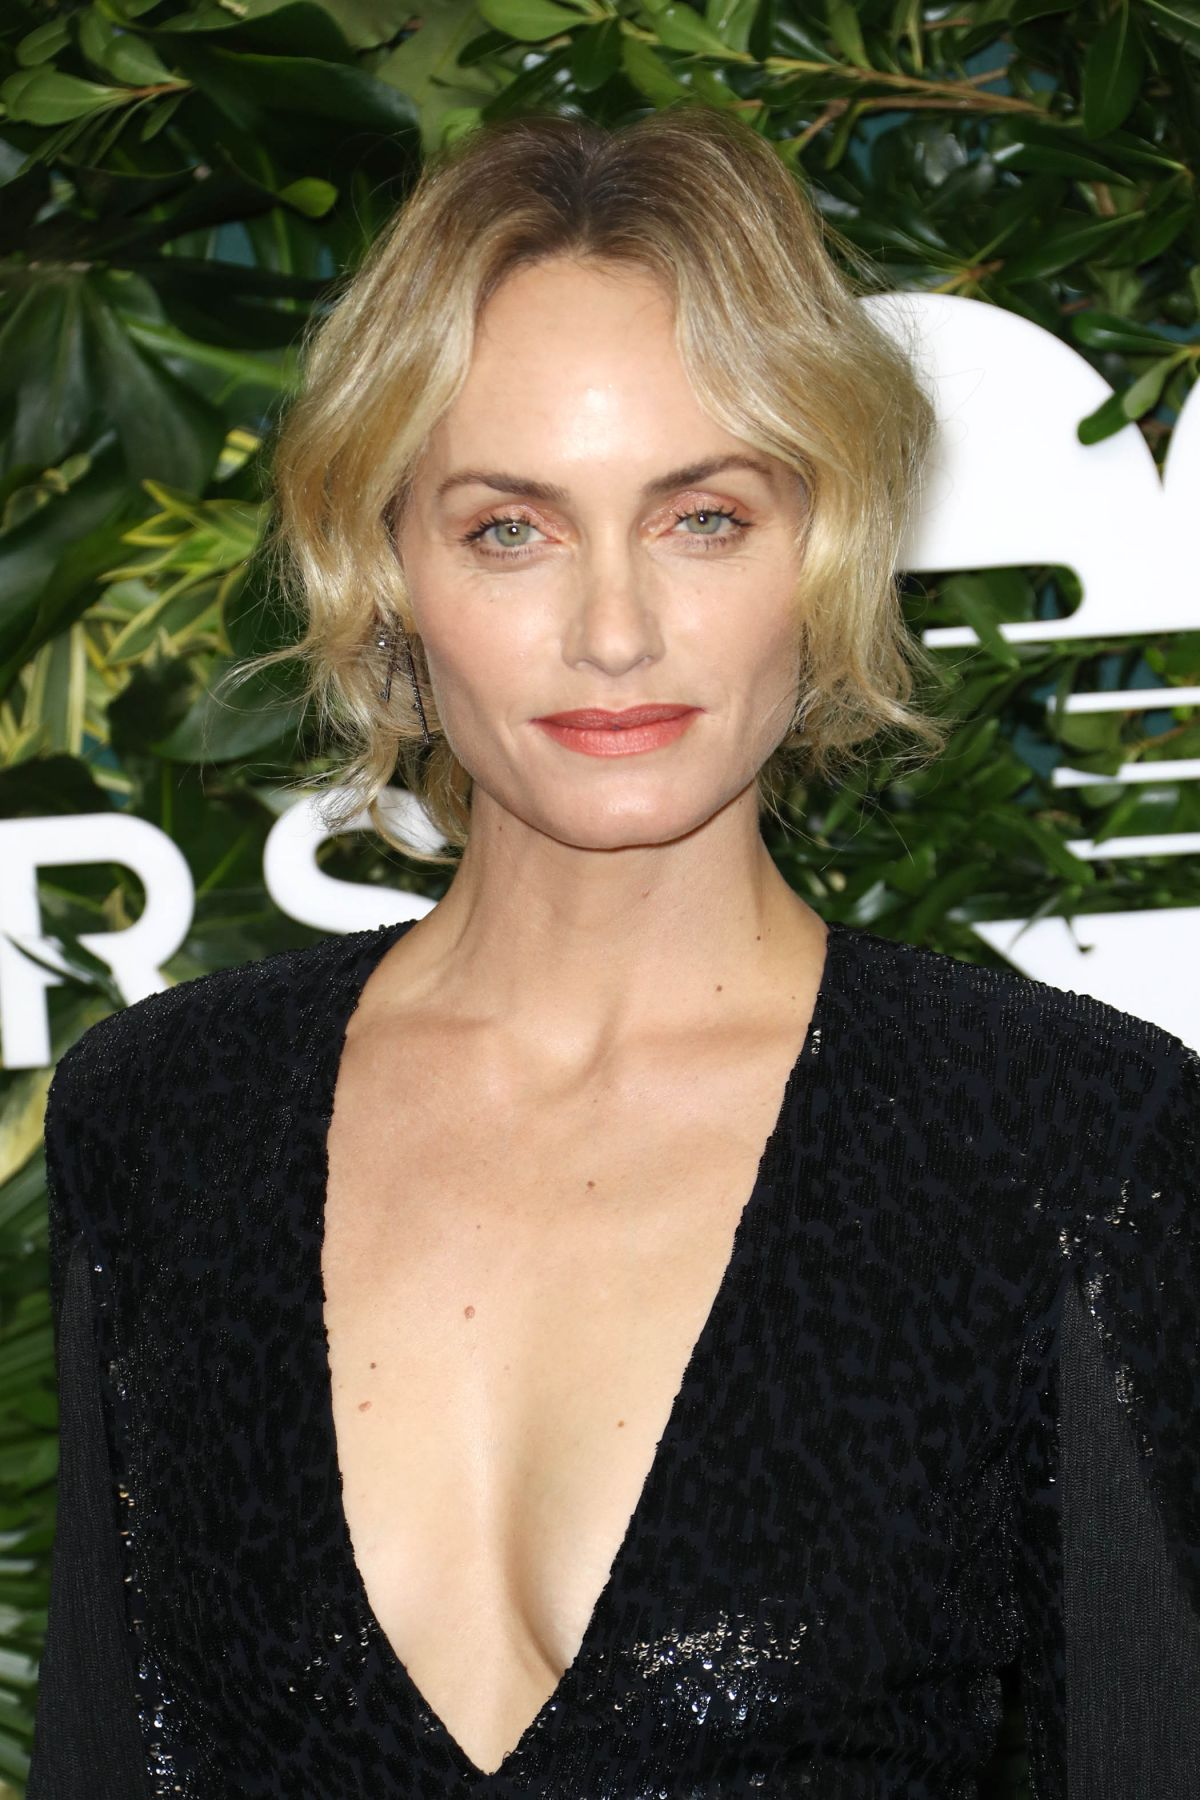 Amber Valletta nudes (15 pics) Young, 2020, butt